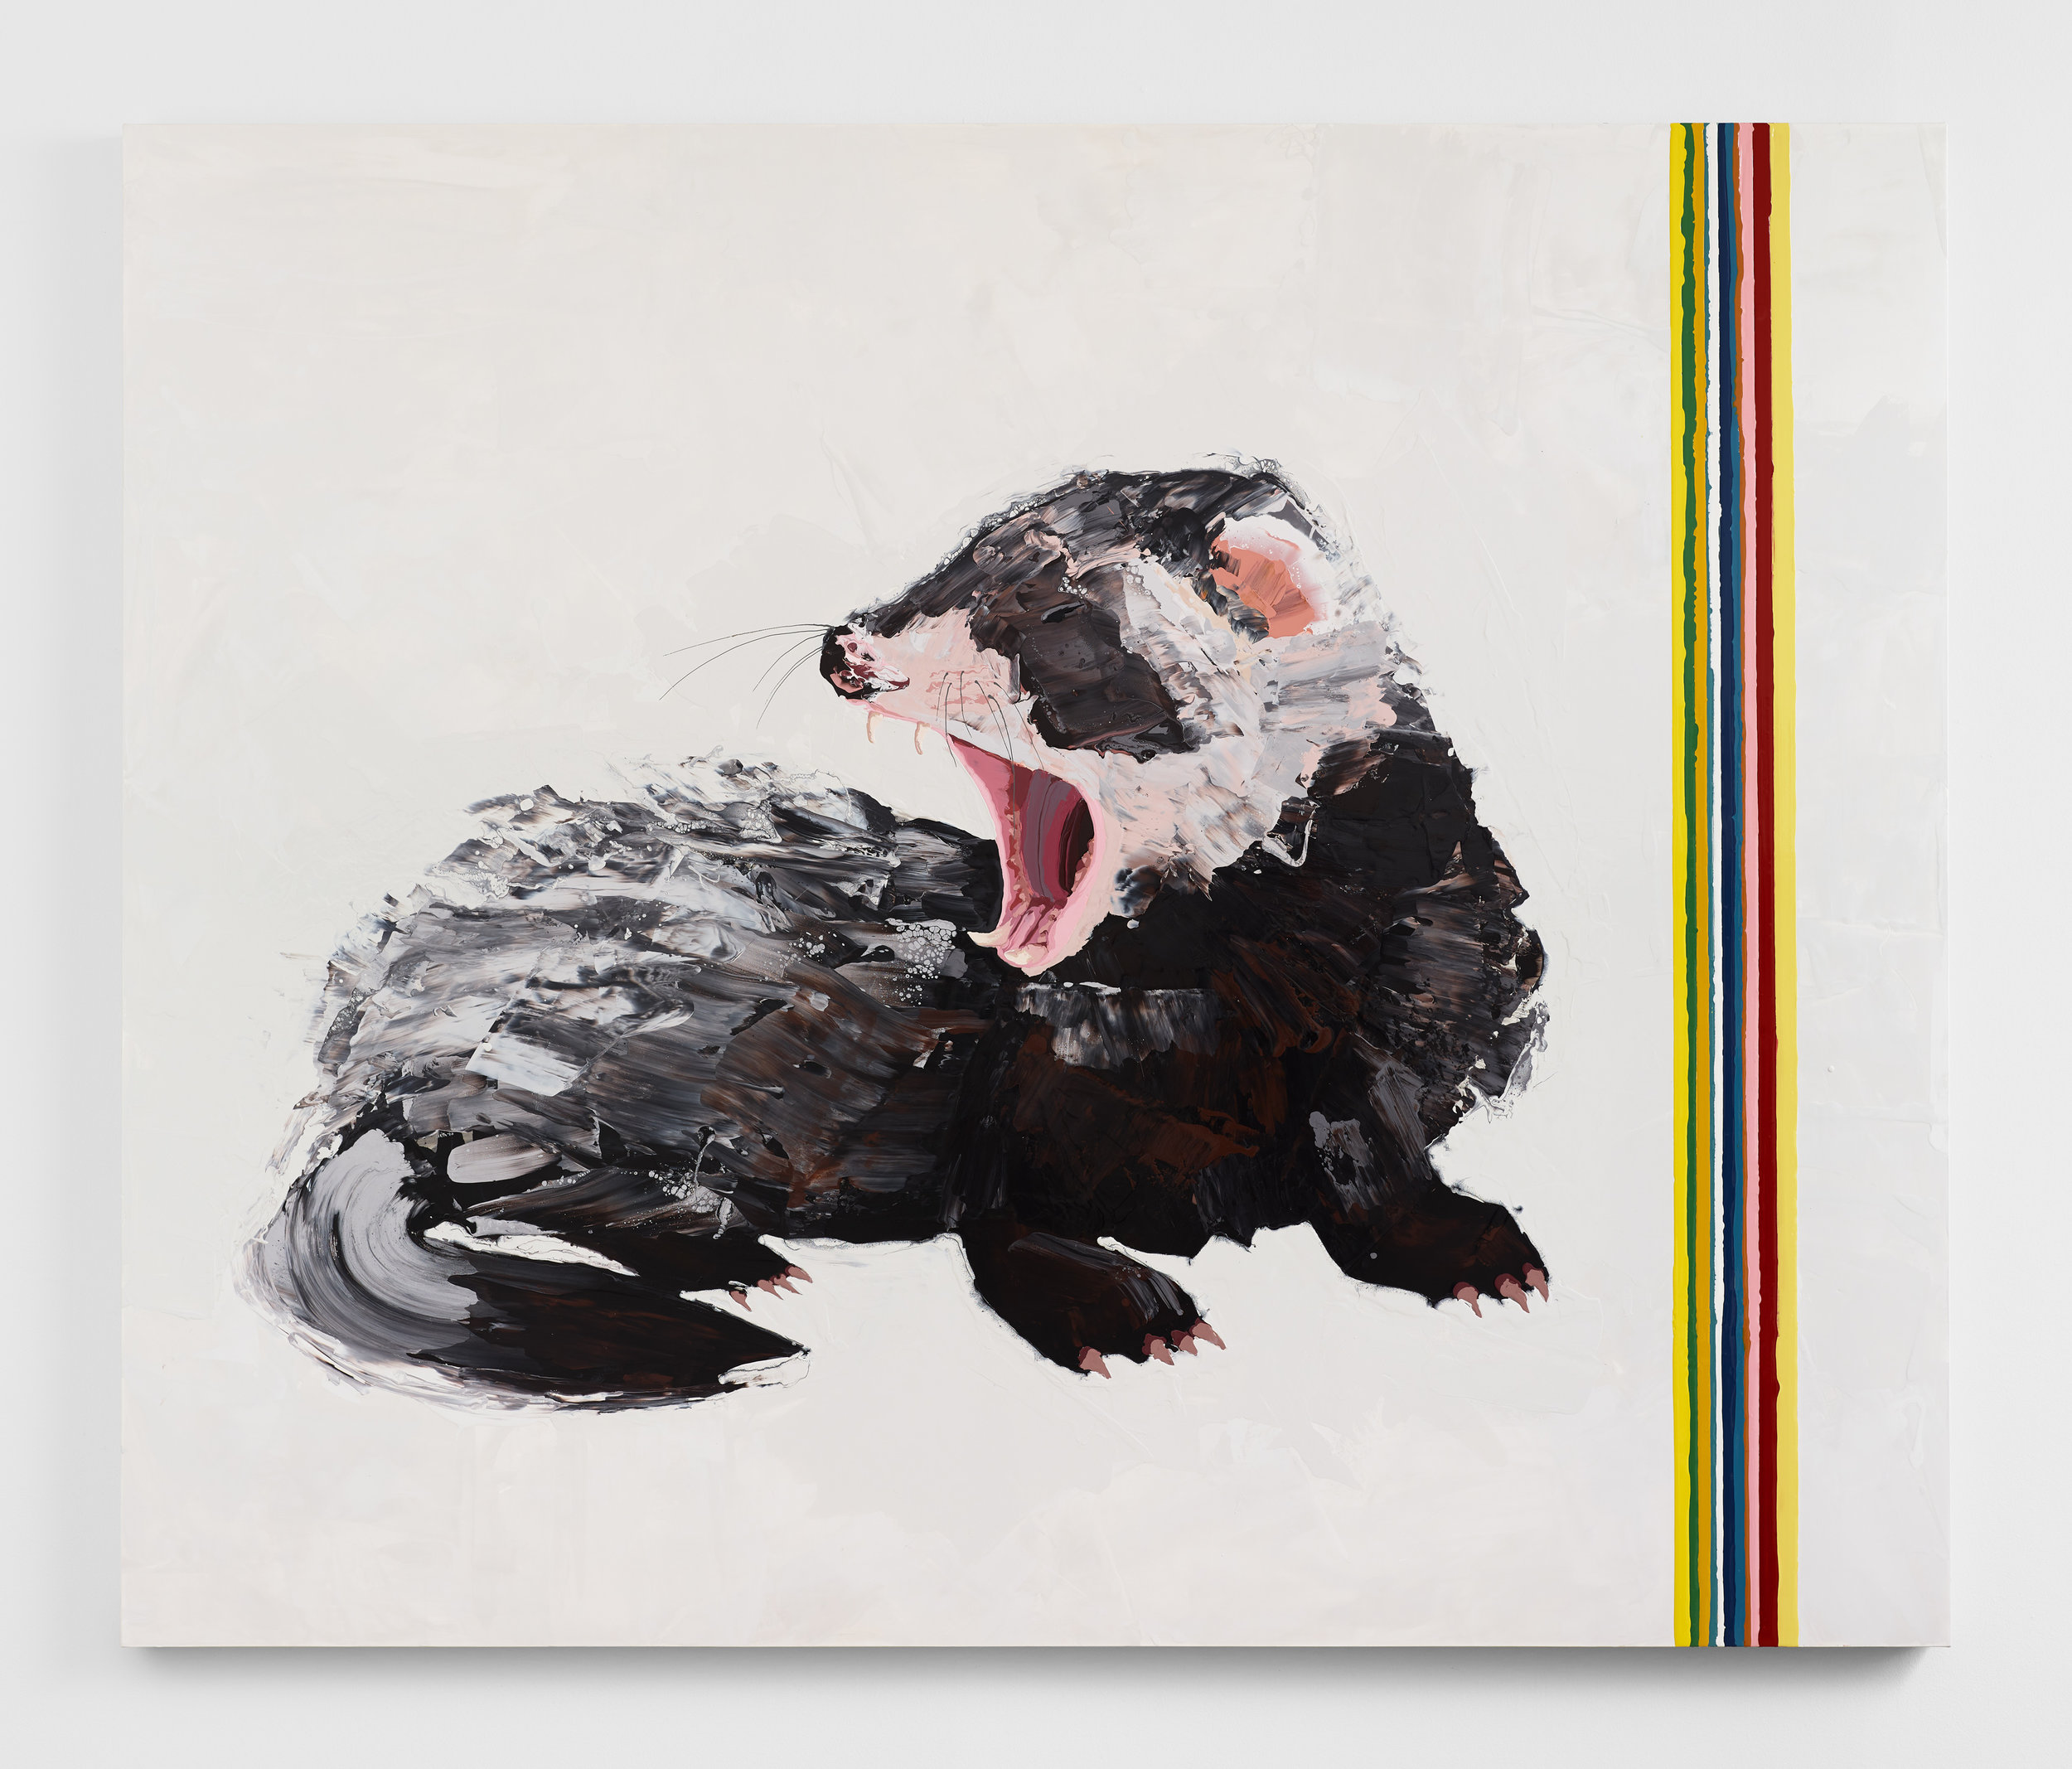 Kirsten Everberg, Ferret, 2019, Oil and enamel on canvas mounted on wood panel, 72 x 60 inches